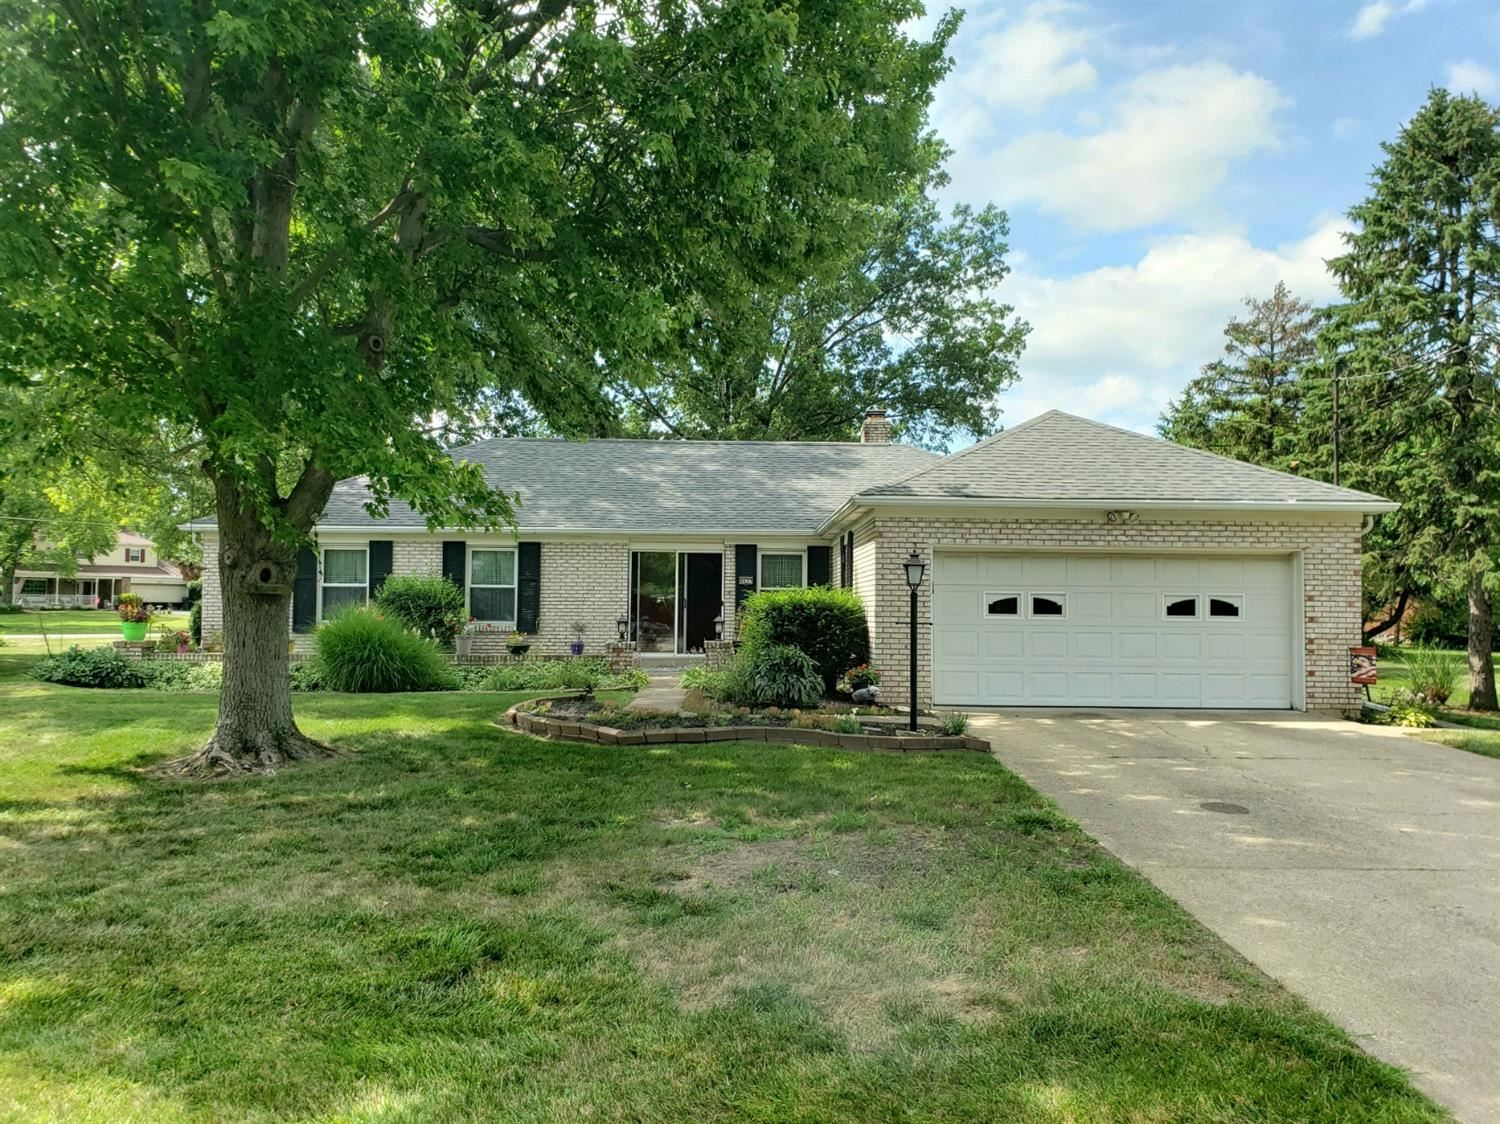 8637 Goldfinch Way, West Chester, OH 45069 - #: 1668650